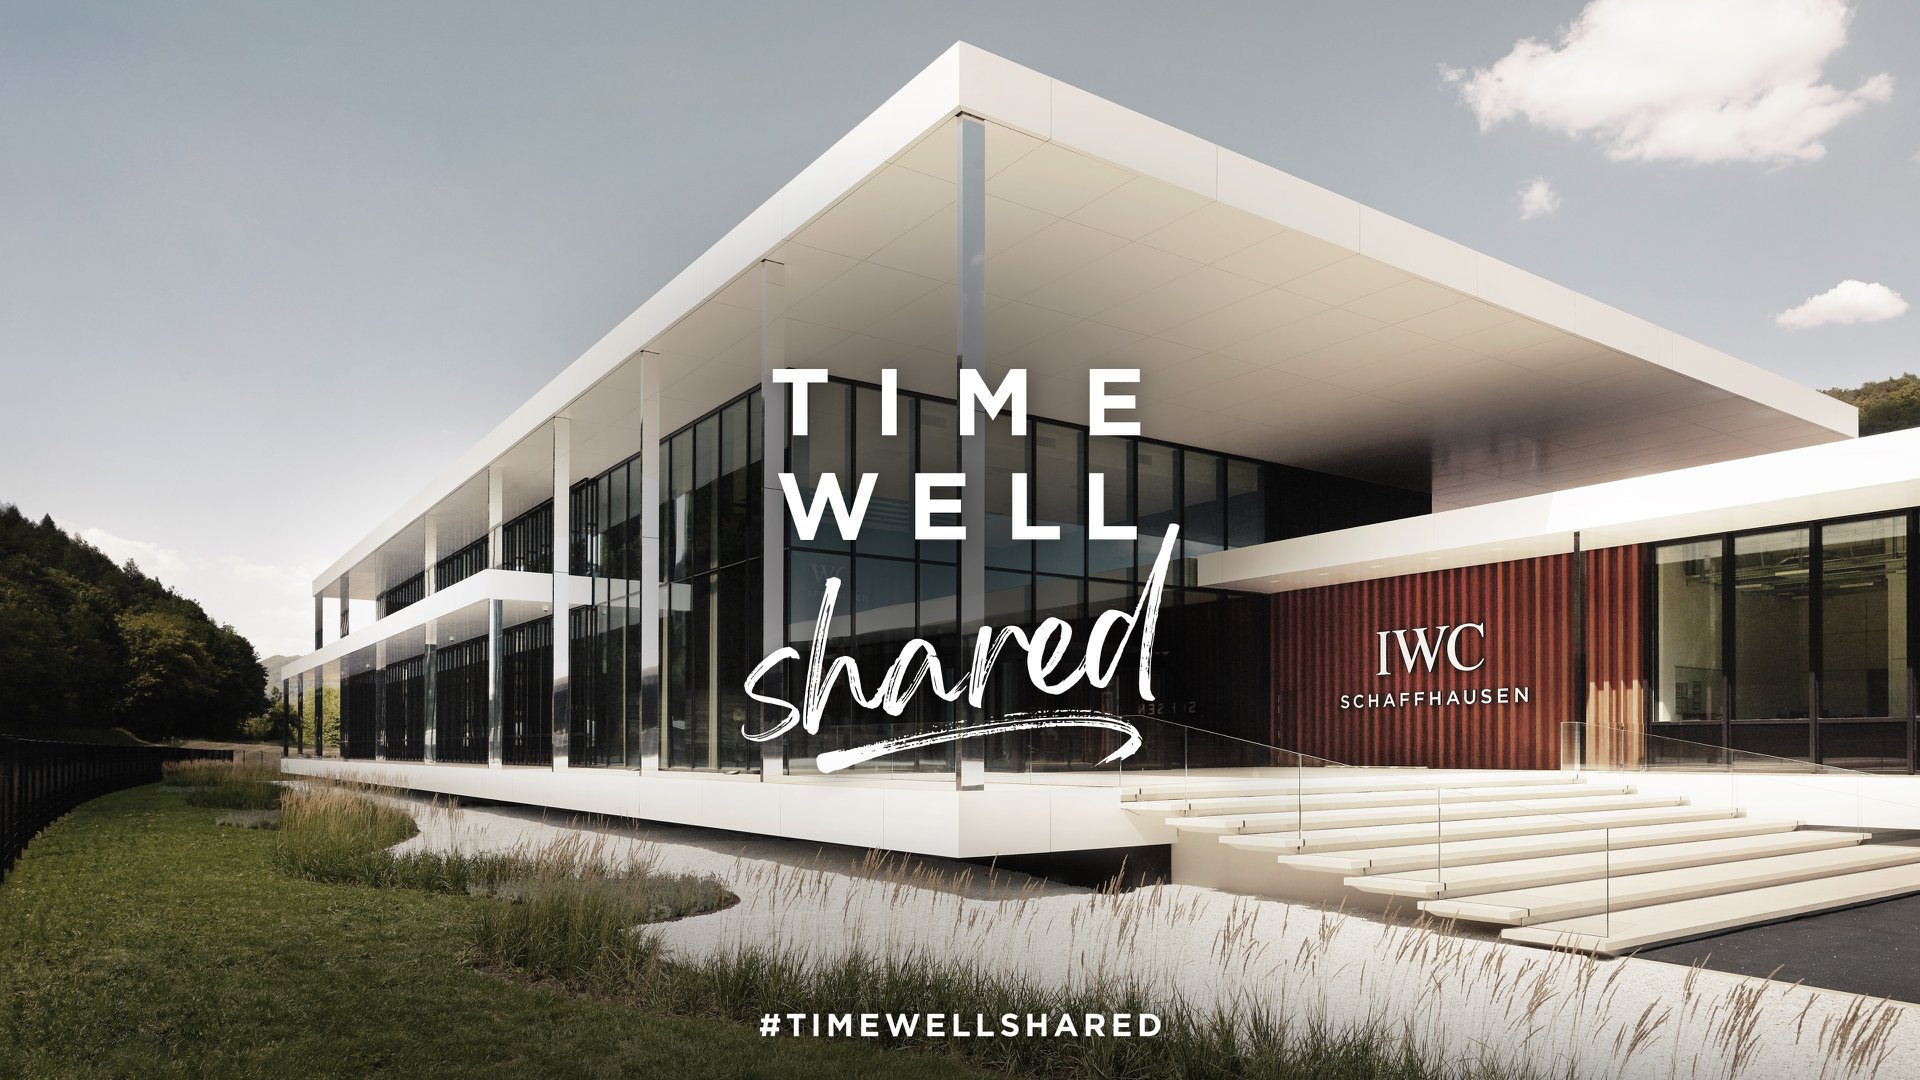 IWC Schaffhausen Time Well Shared